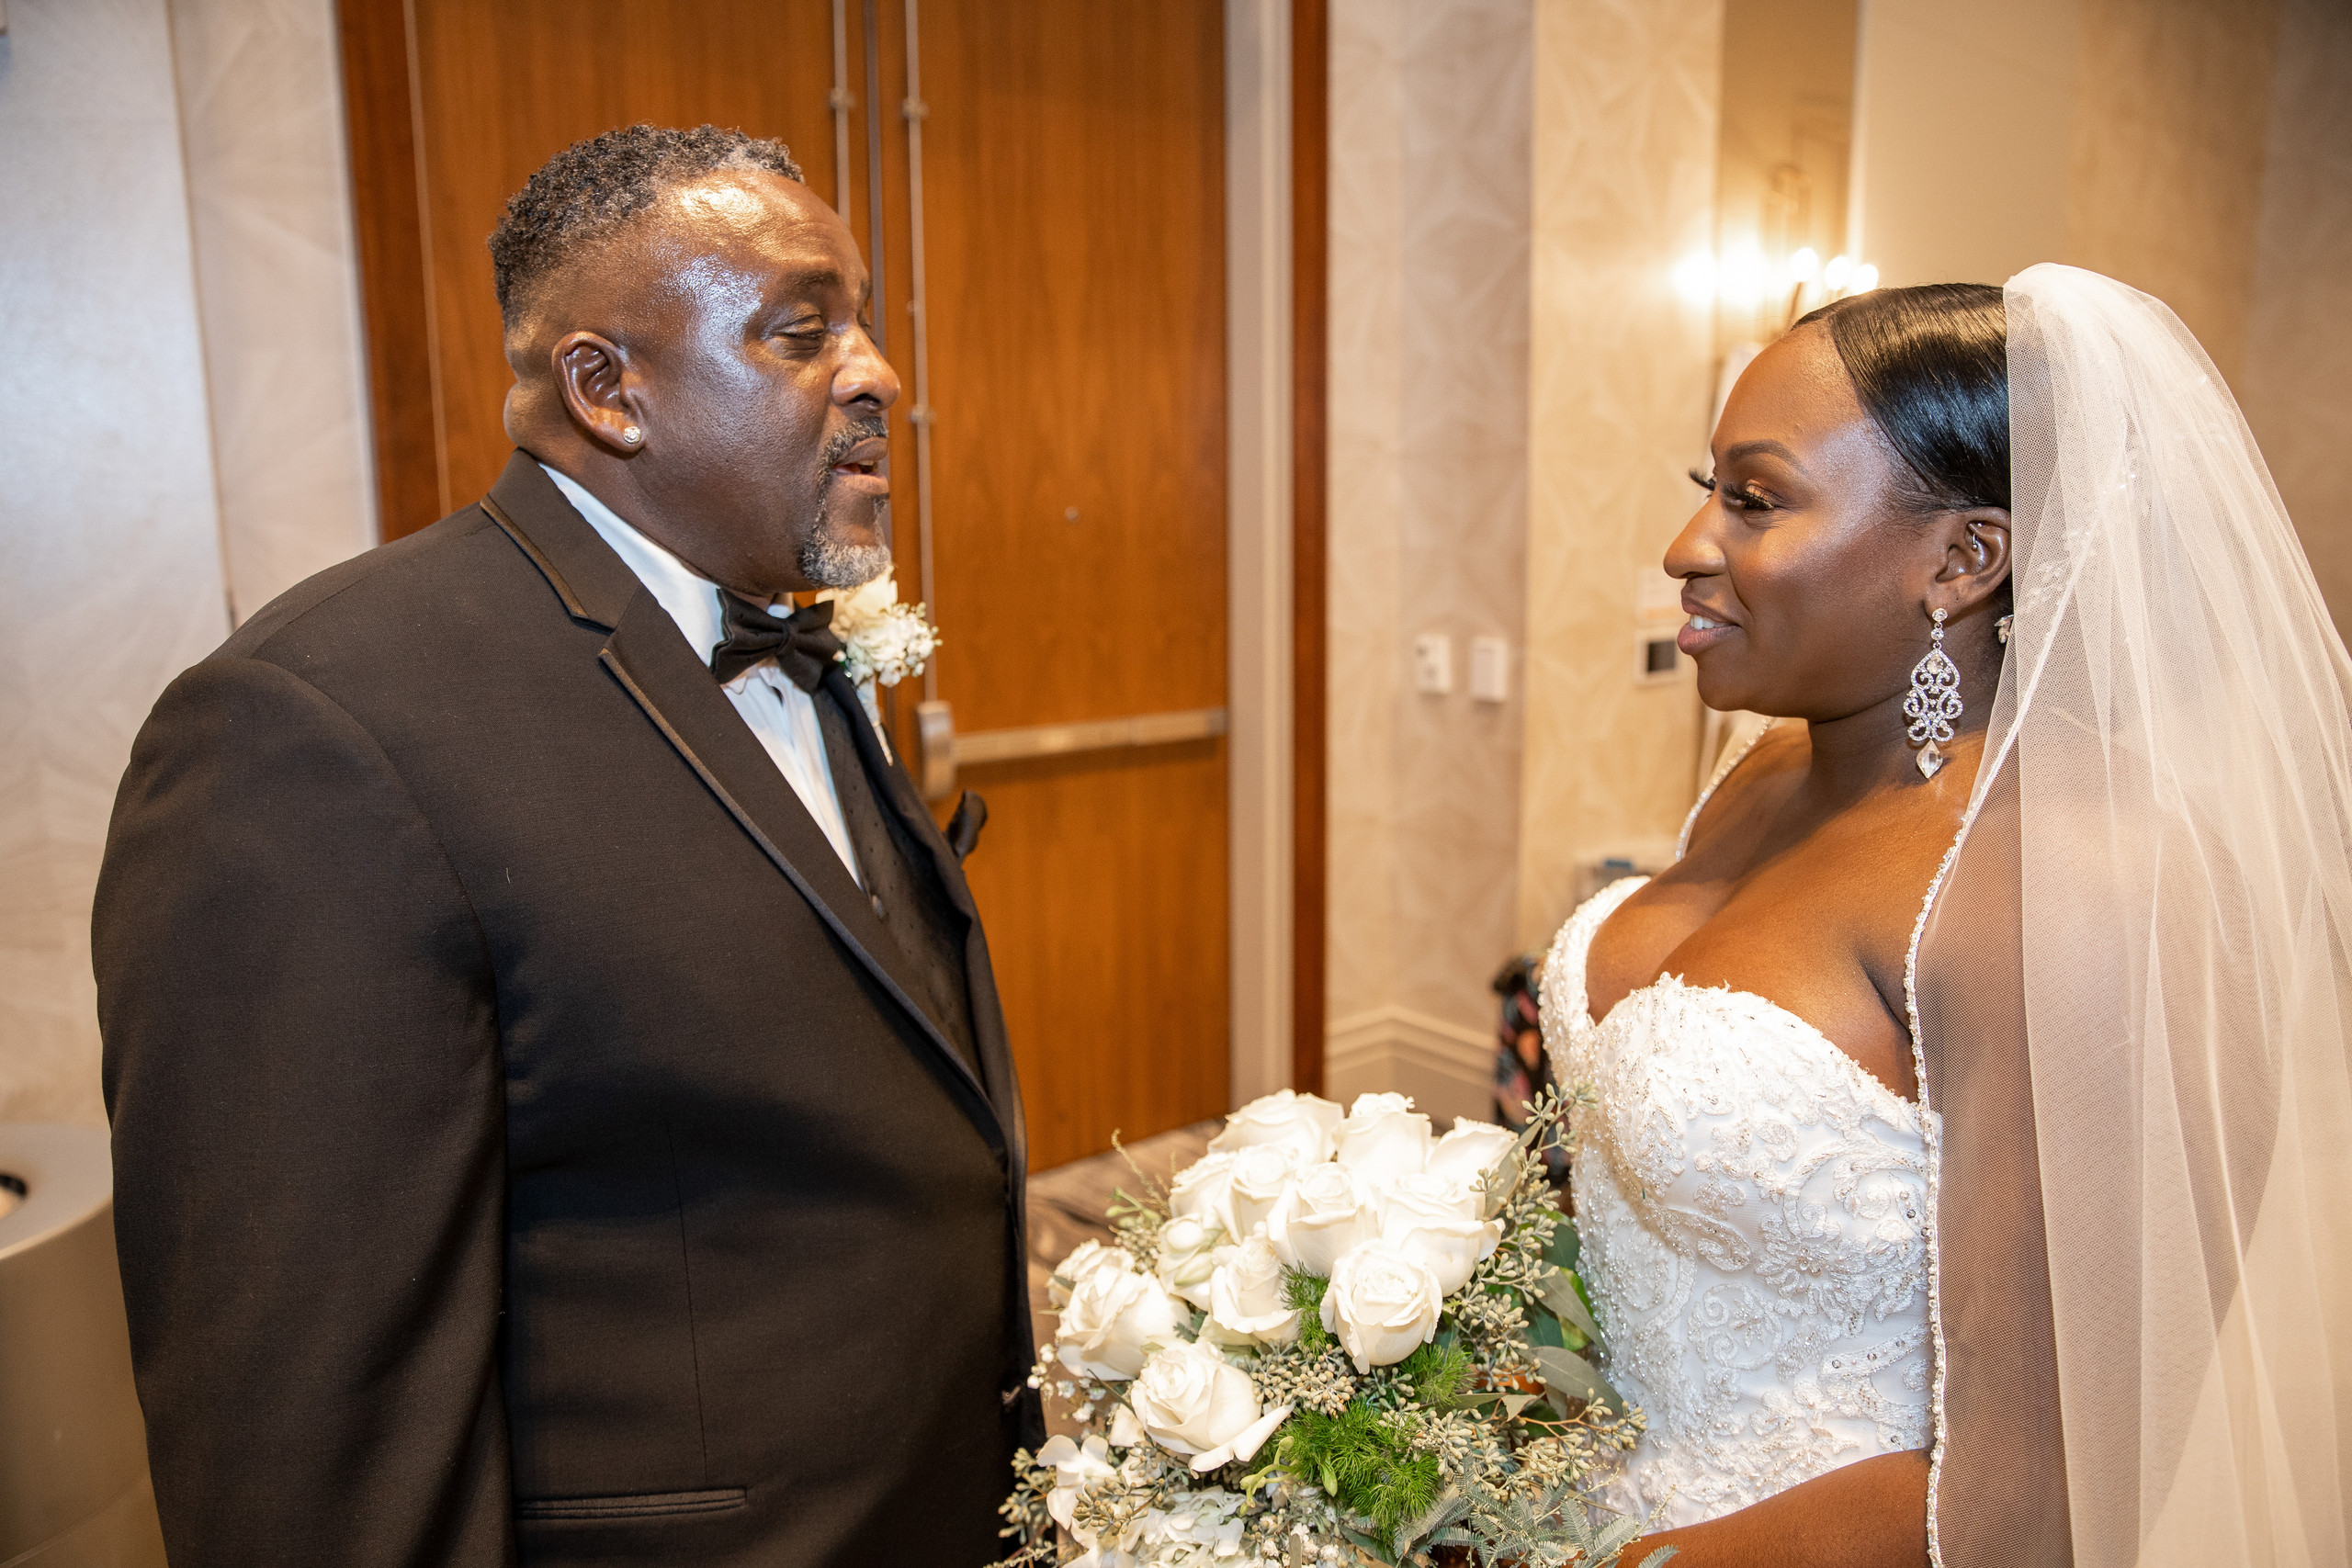 The father of the bride sees his daughter for the first time before the wedding ceremony at the Hilton Main in Norfolk, Virginia.